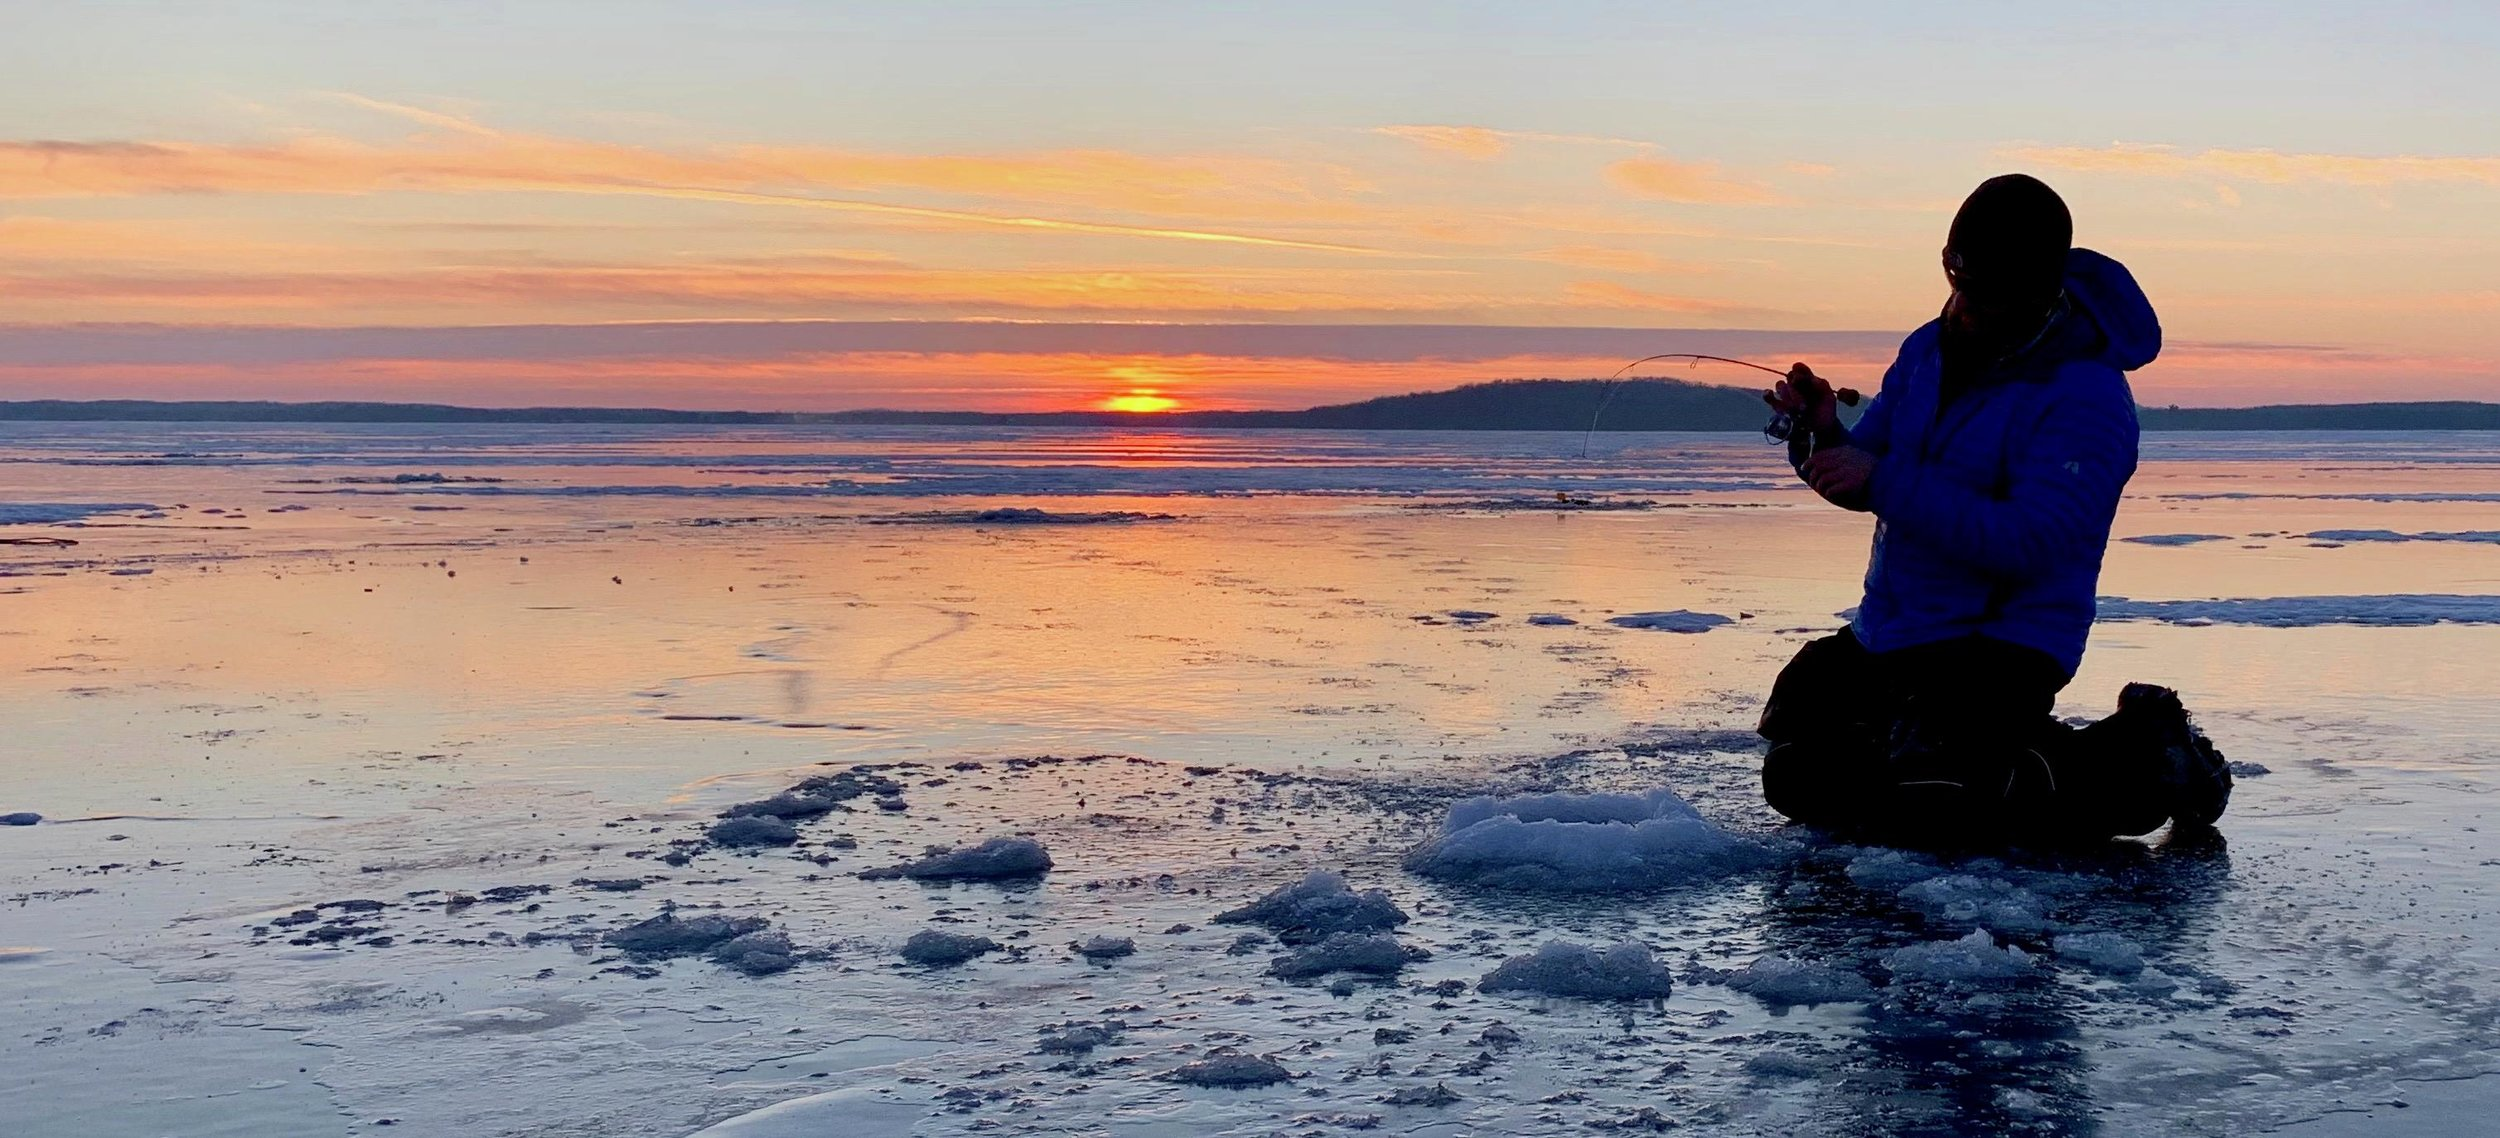 Christian Hoffman sets the hook on a big smallmouth bass just before sunrise on Mille Lacs Lake. Submitted photo / Christian Hoffman